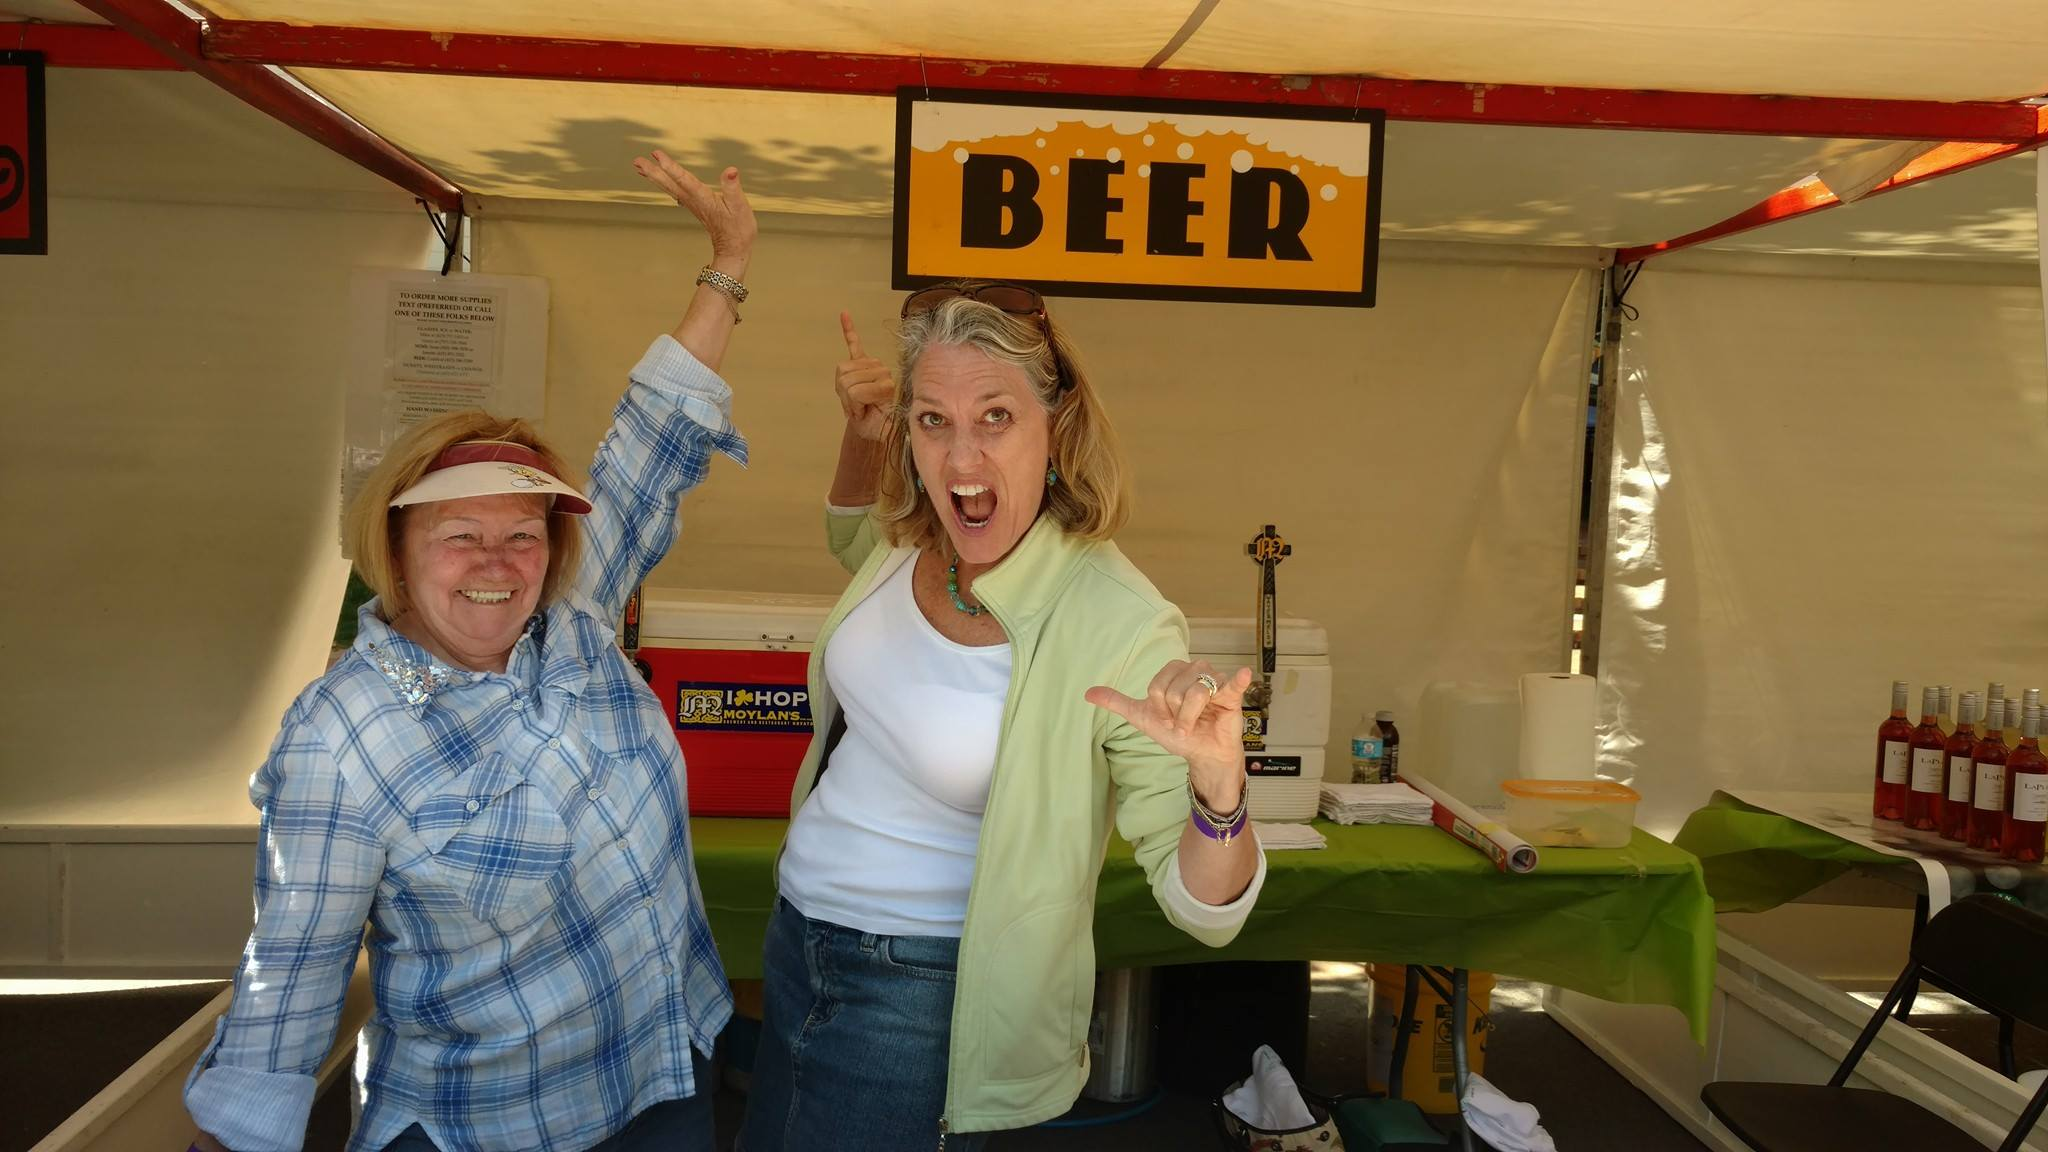 beer shelly dorssers shell's belles jewelry novato art wine chamber